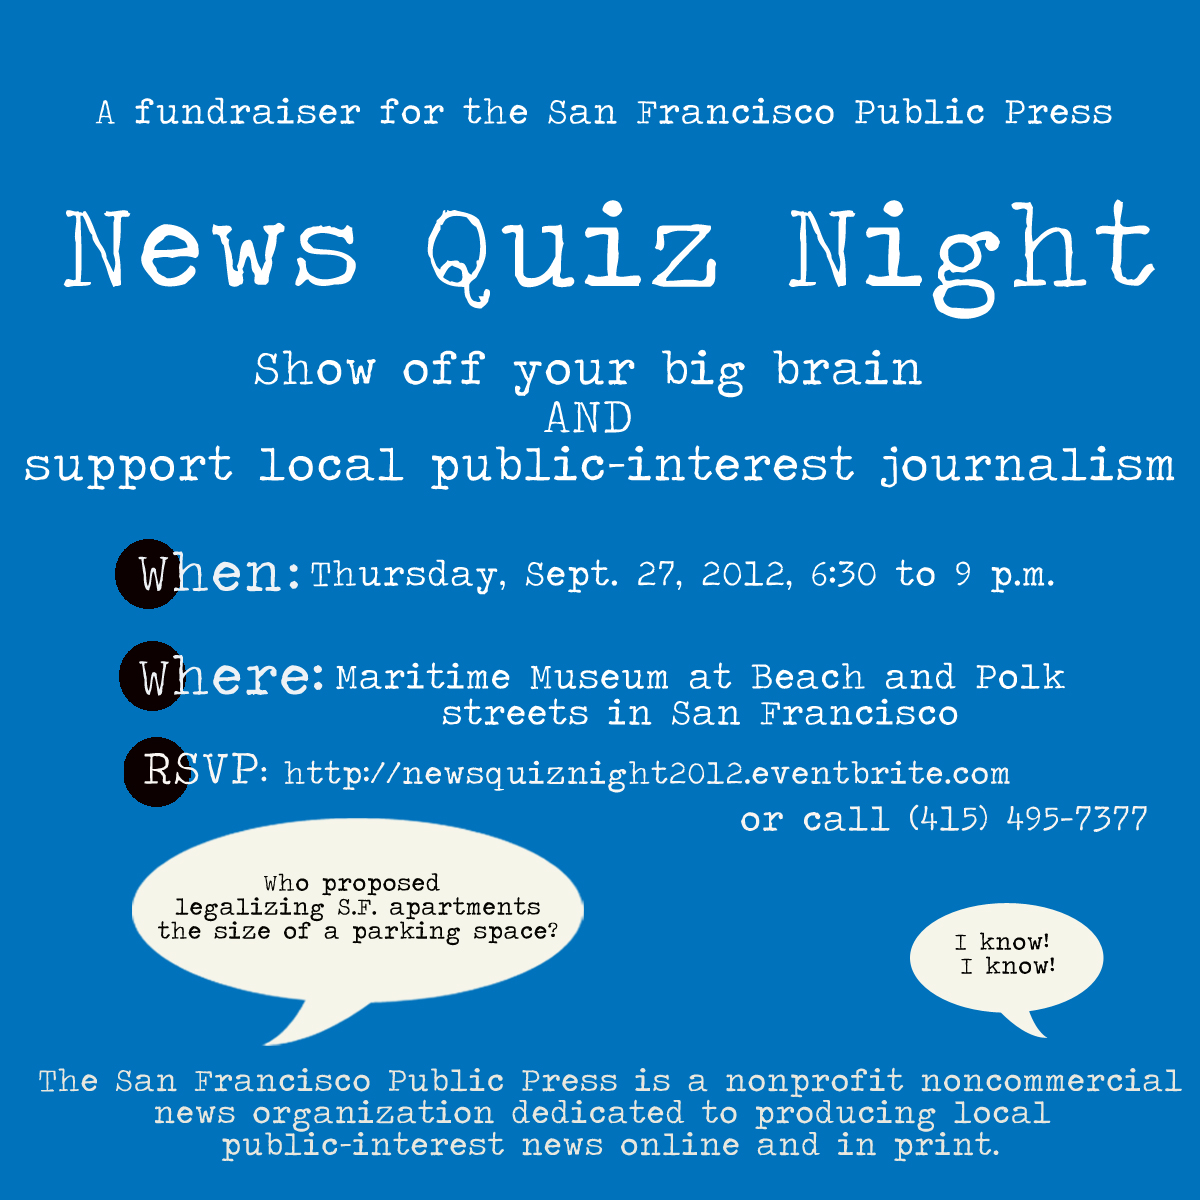 This is an invitation to News Quiz Night, a fundraiser for the San Francisco Public Press. Show off your big brain and support local public-interest journalism! When: Thursday, Sept. 27, 2012, from 6:30 to 9 p.m. Where: The Maritime Museum at Beach and Polk streets in San Francisco. Please RSVP via this eventbrite or call 415-495-7377.